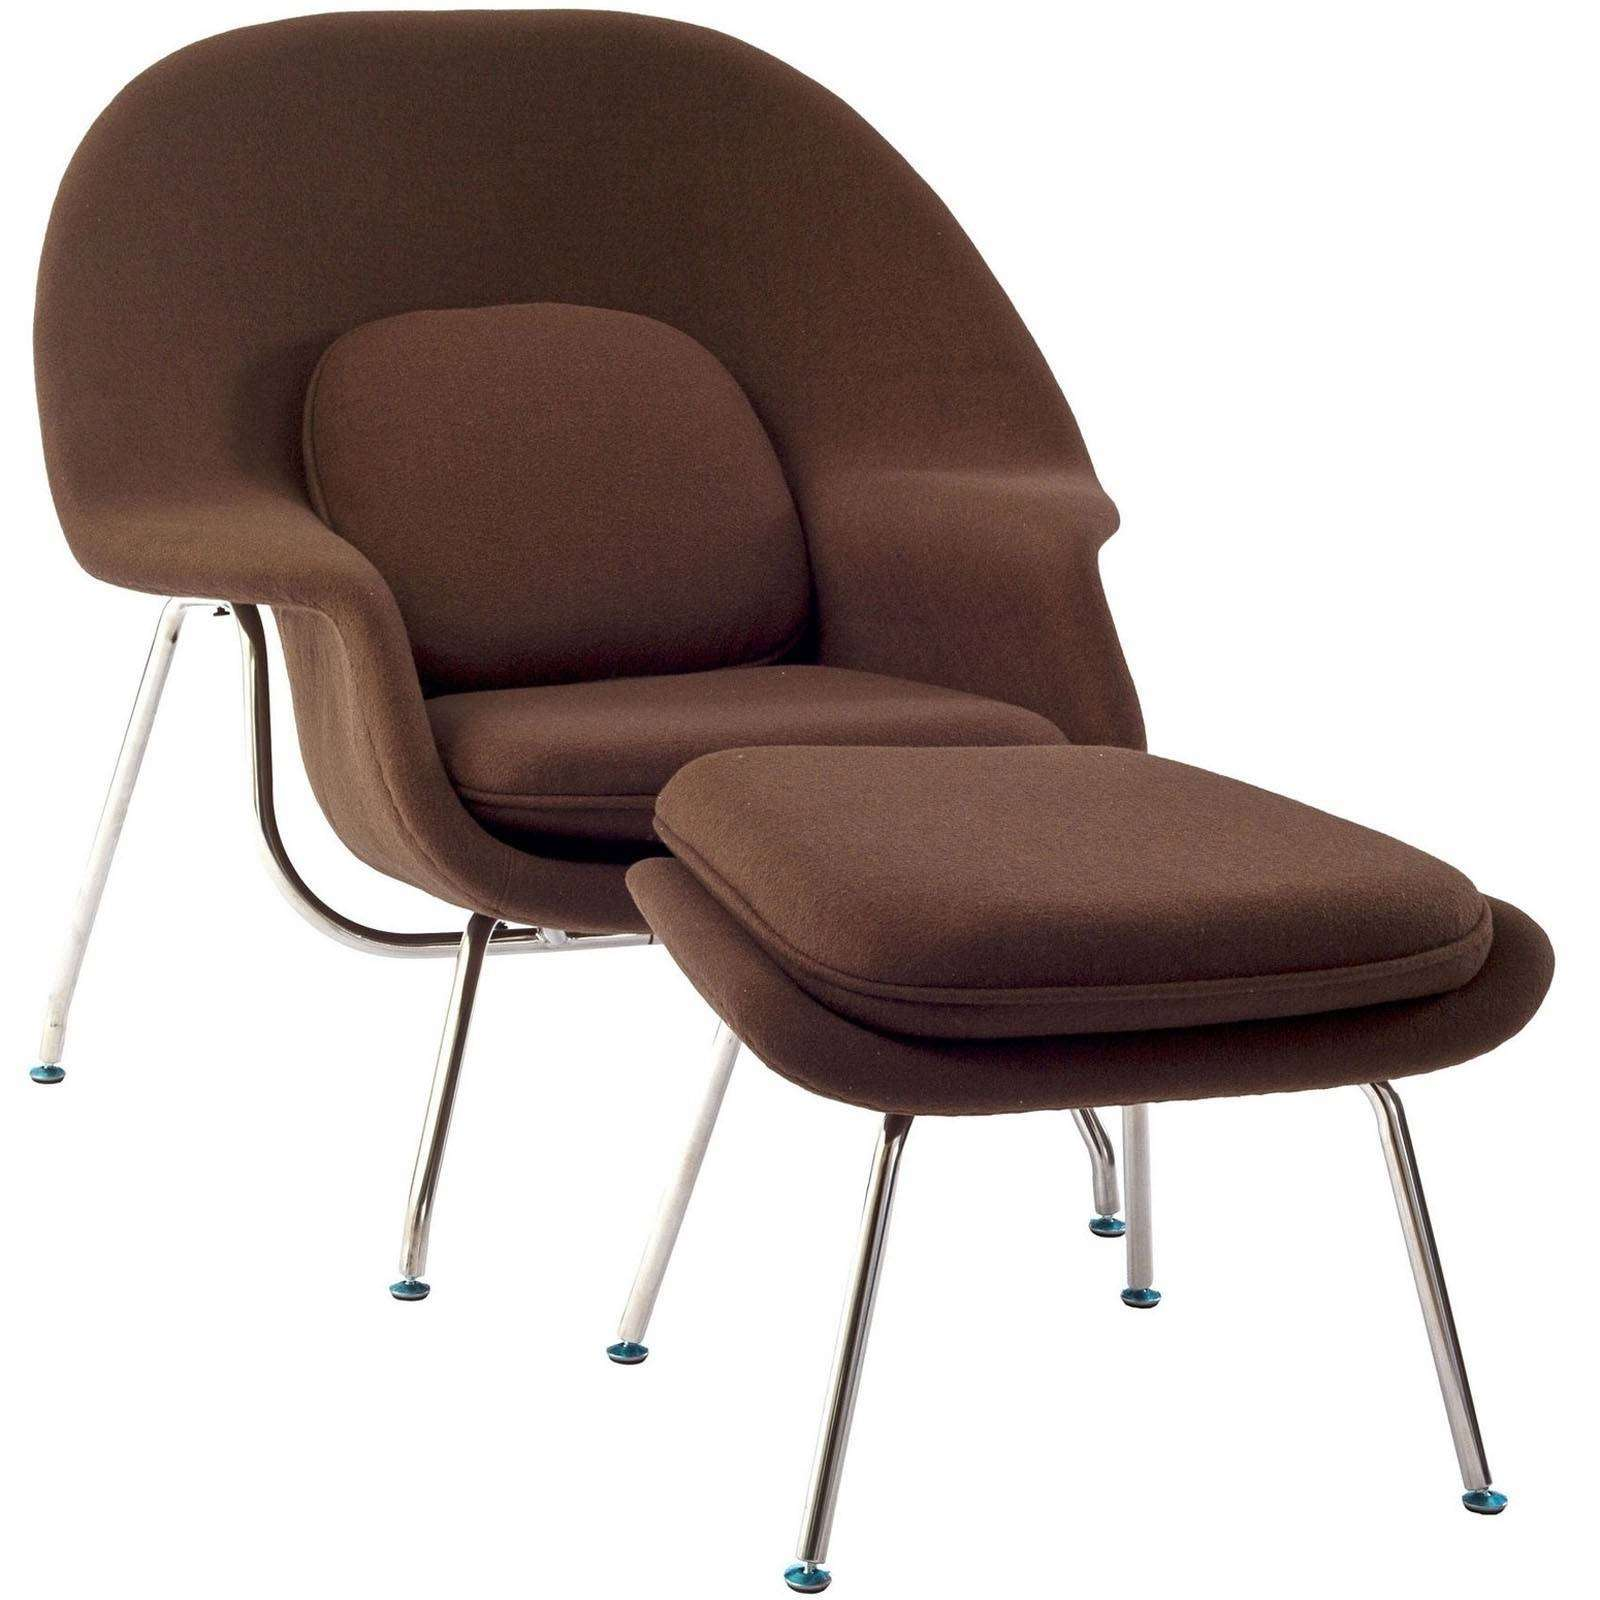 Womb Lounge Chair womb chair - saarinen lounge ottoman | modterior